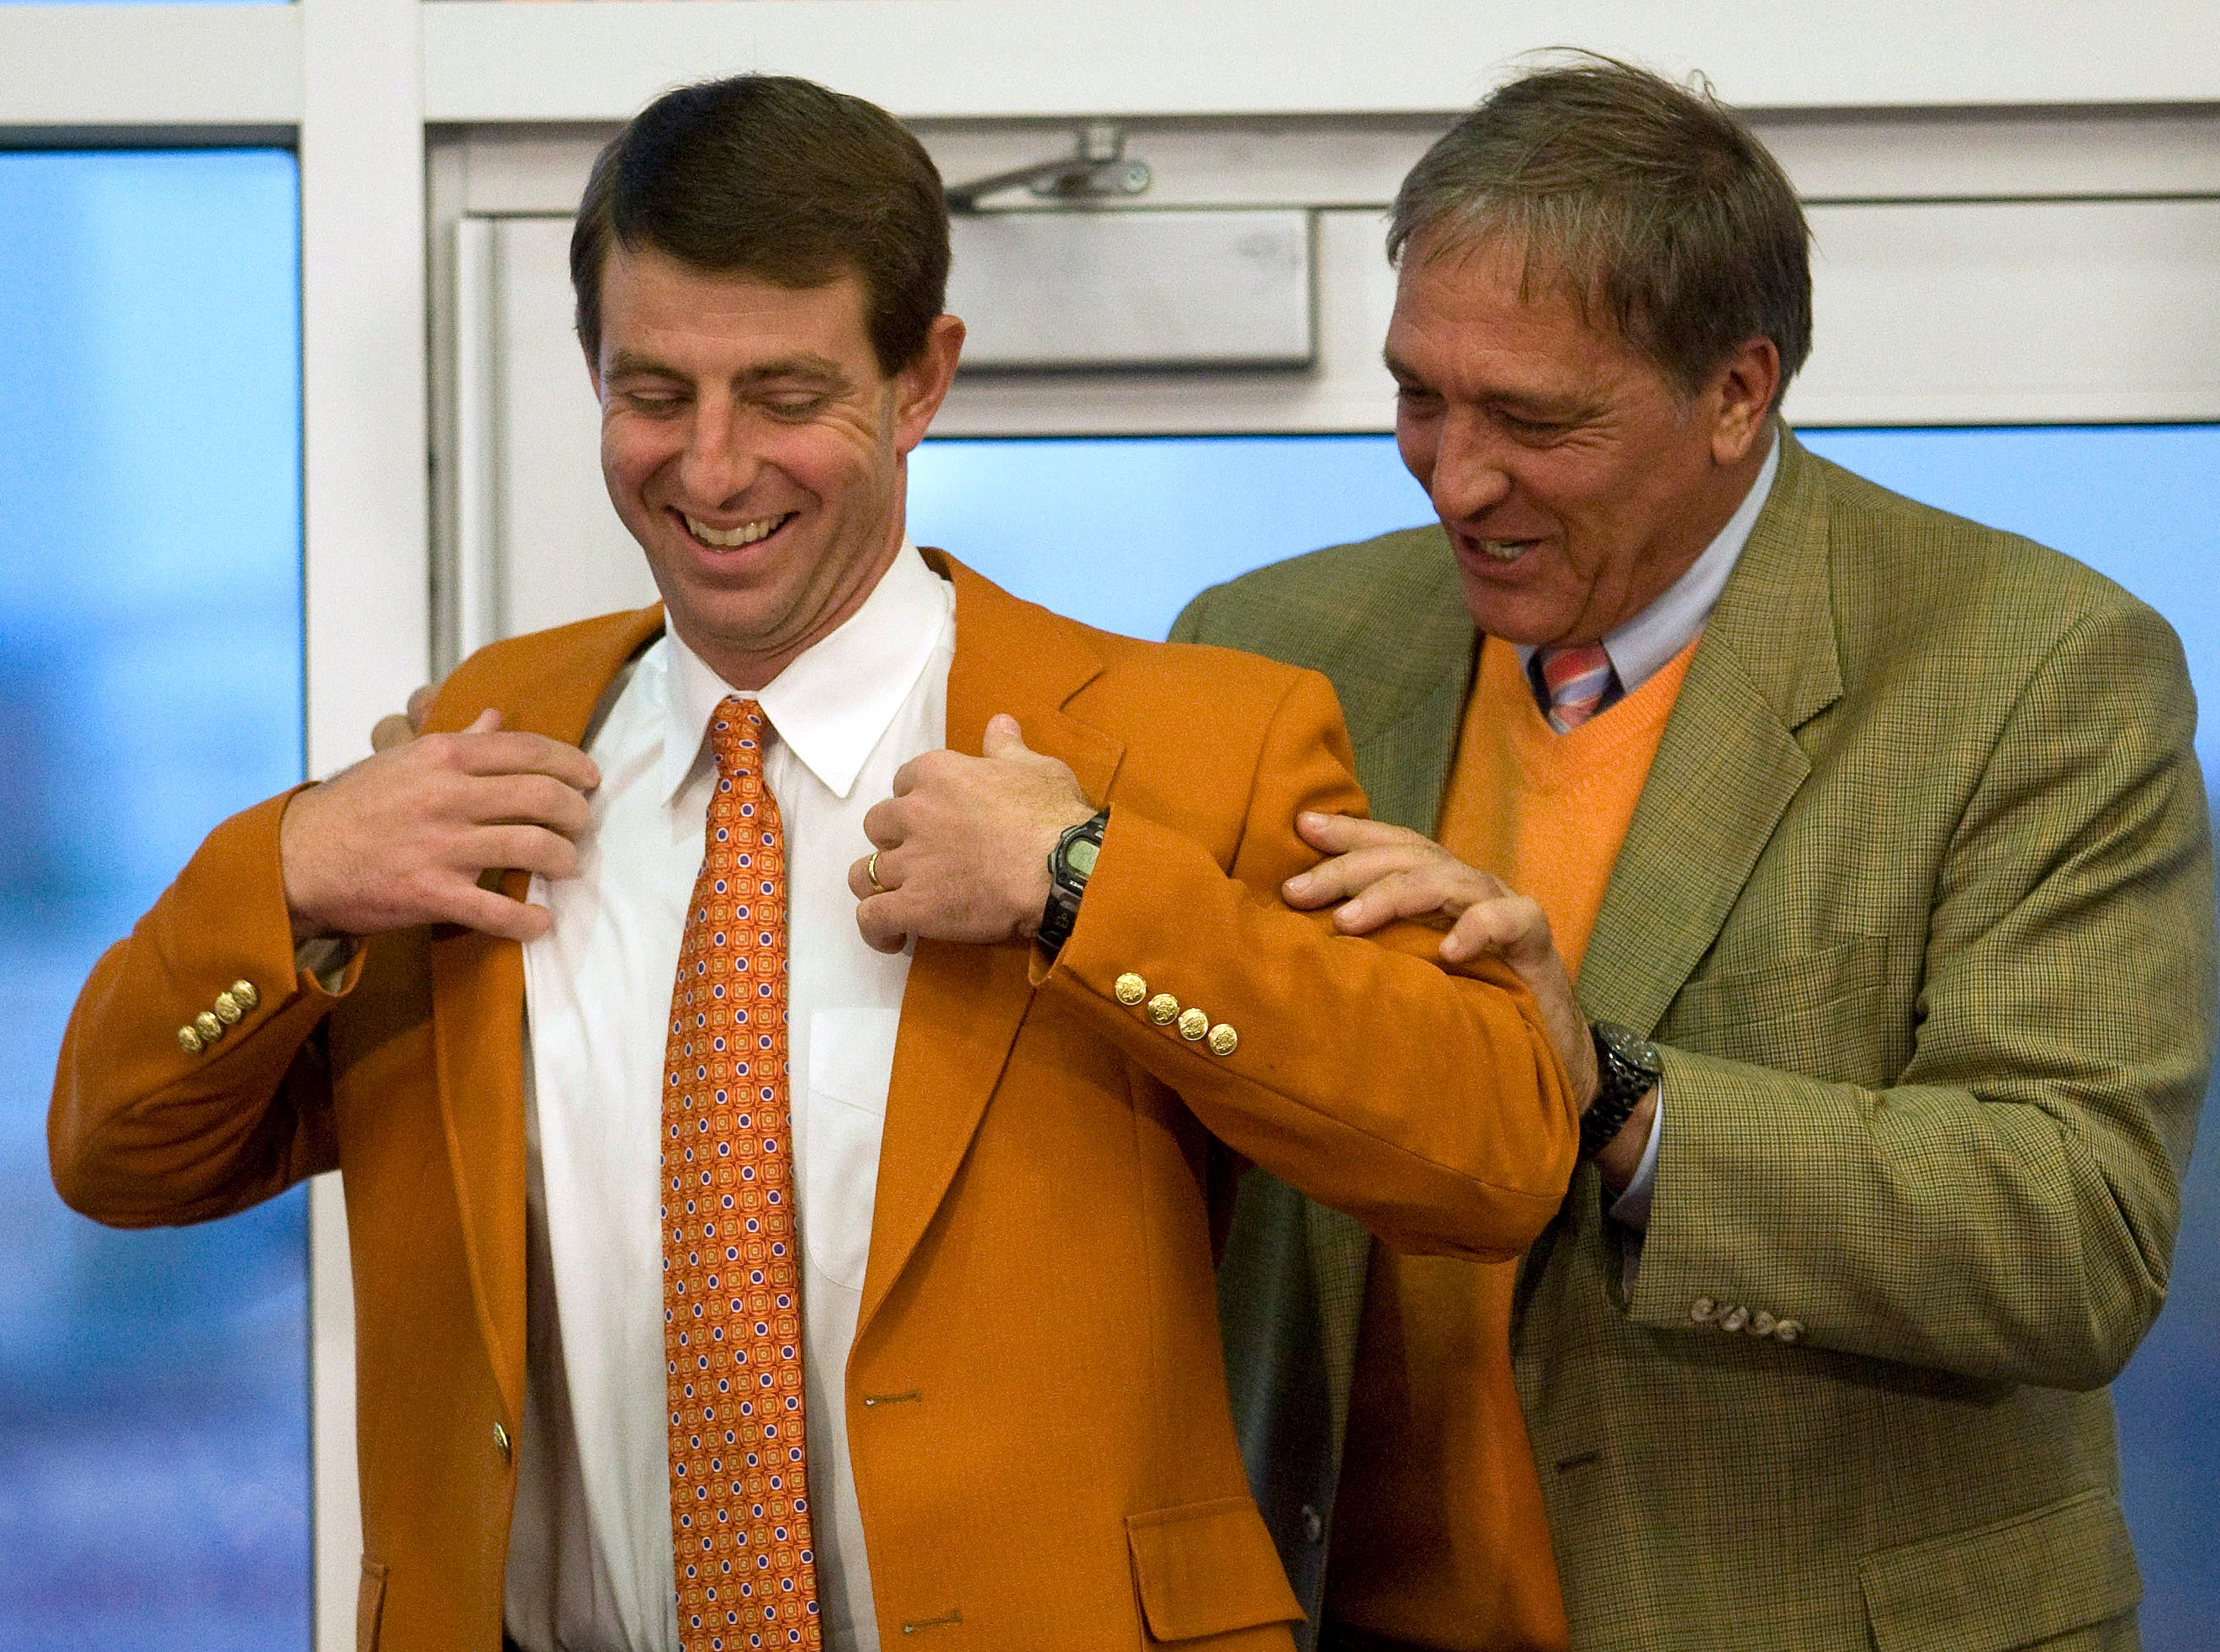 Senior Associate Athletic Director Bill D'Andrea puts an orange blazor on Dabo Swinney during a press conference at Memorial Stadium in Clemson Monday, December 1,  2008 where Swinney was named Clemson's head football coach.